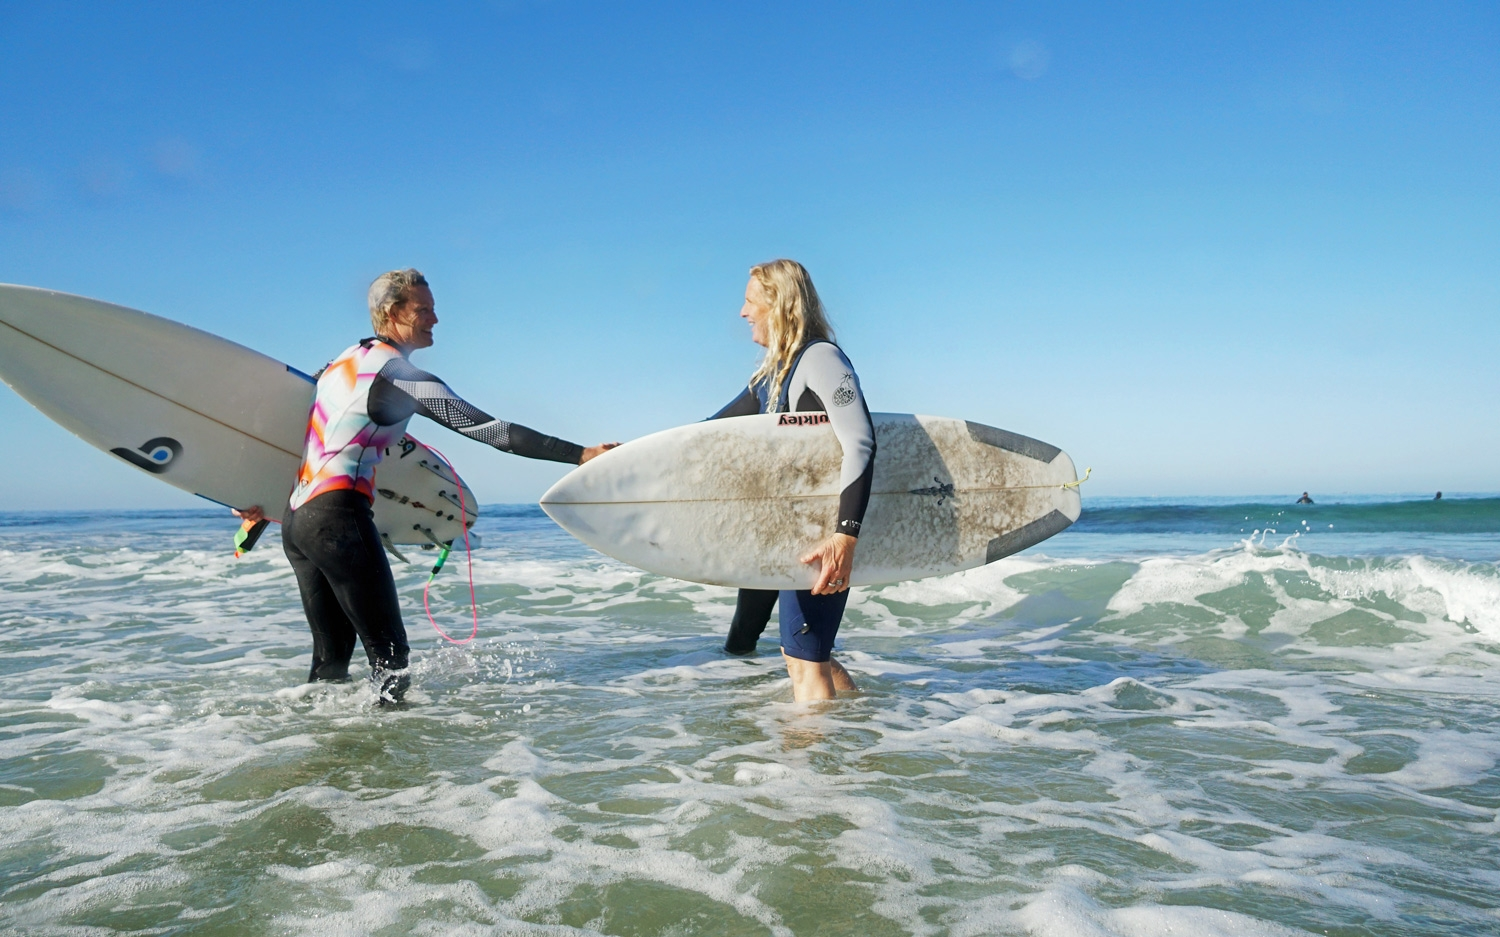 Our Expert Surf Coach Courtney (on the right) congratulating Deb for an awesome surf session!